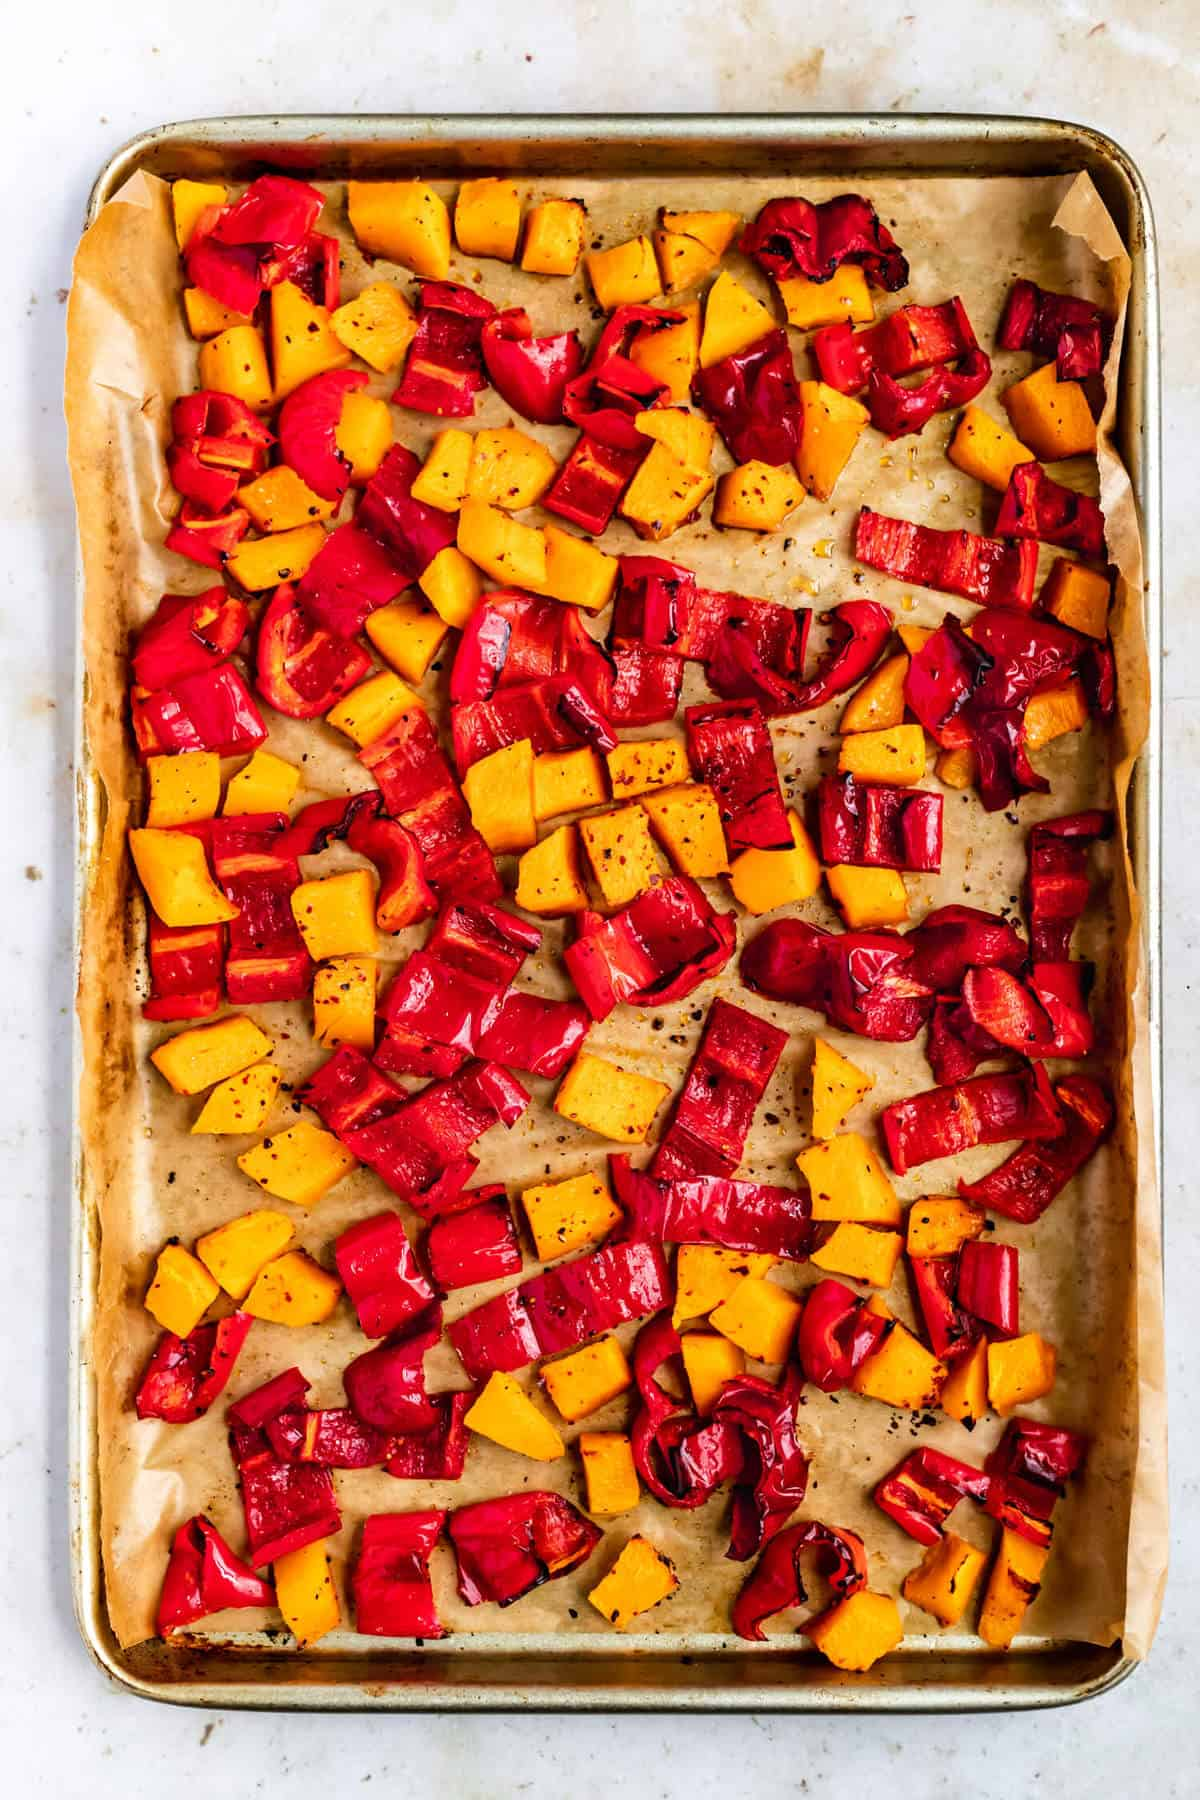 a baking sheet lined with parchment paper, with roasted squash and red peppers